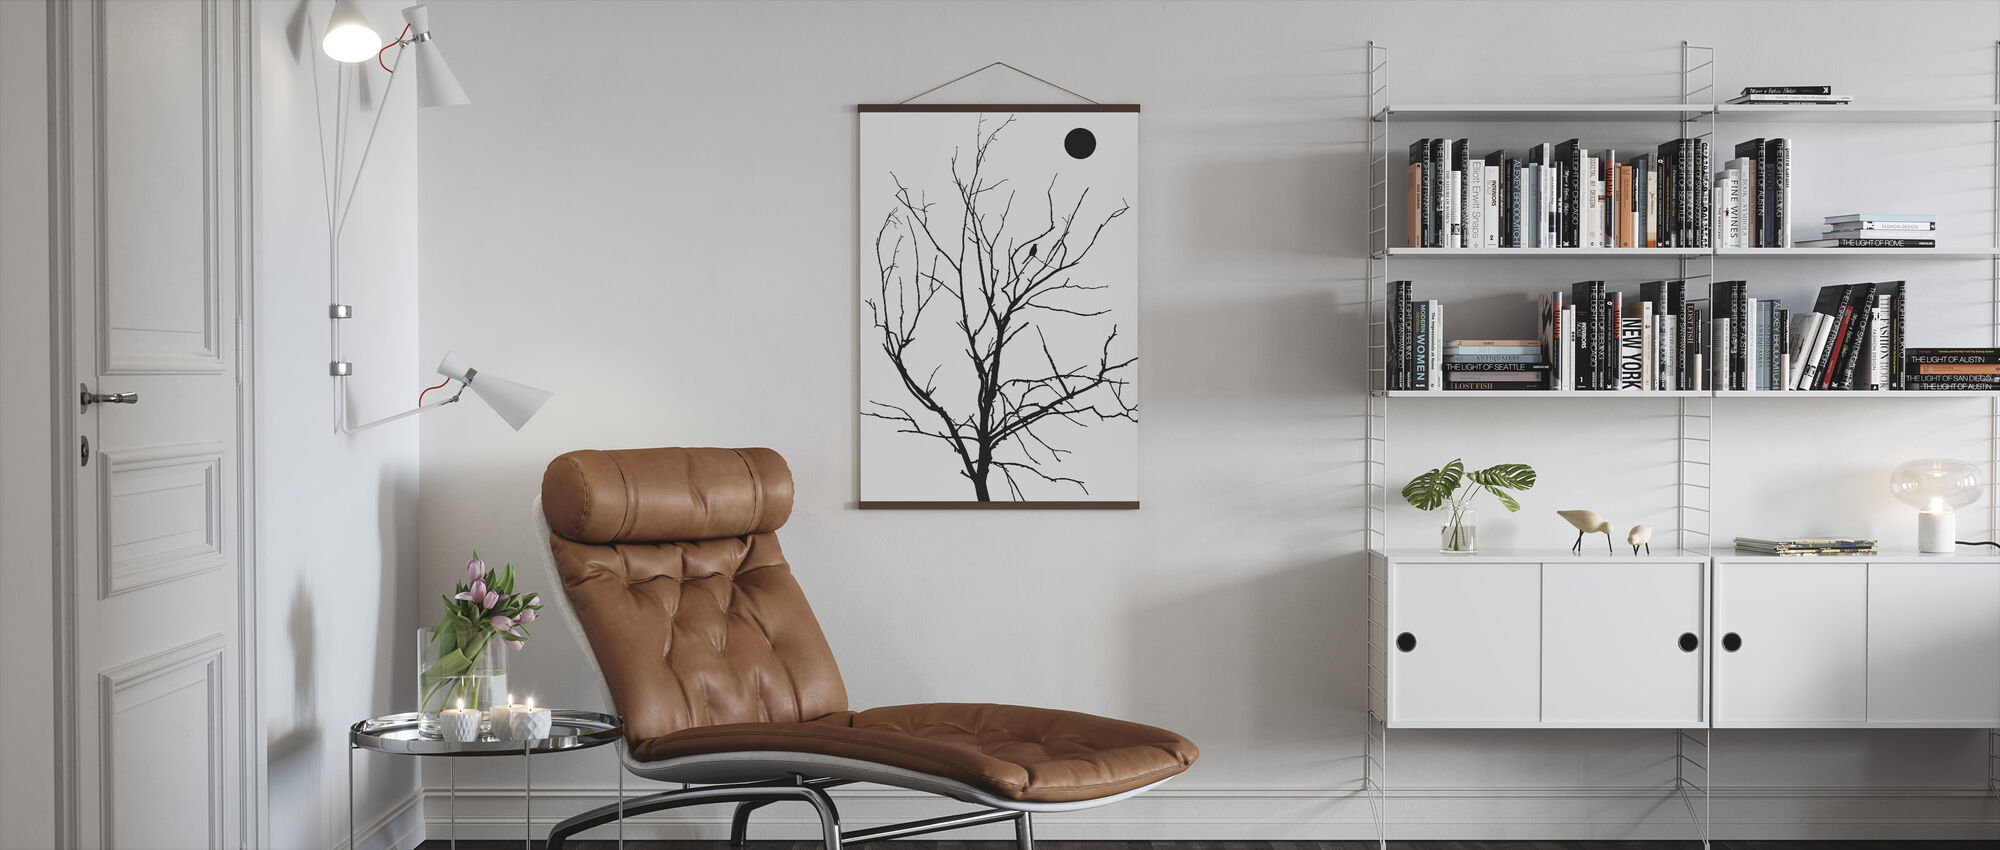 Lonely Bird Day Sun - Poster - Living Room